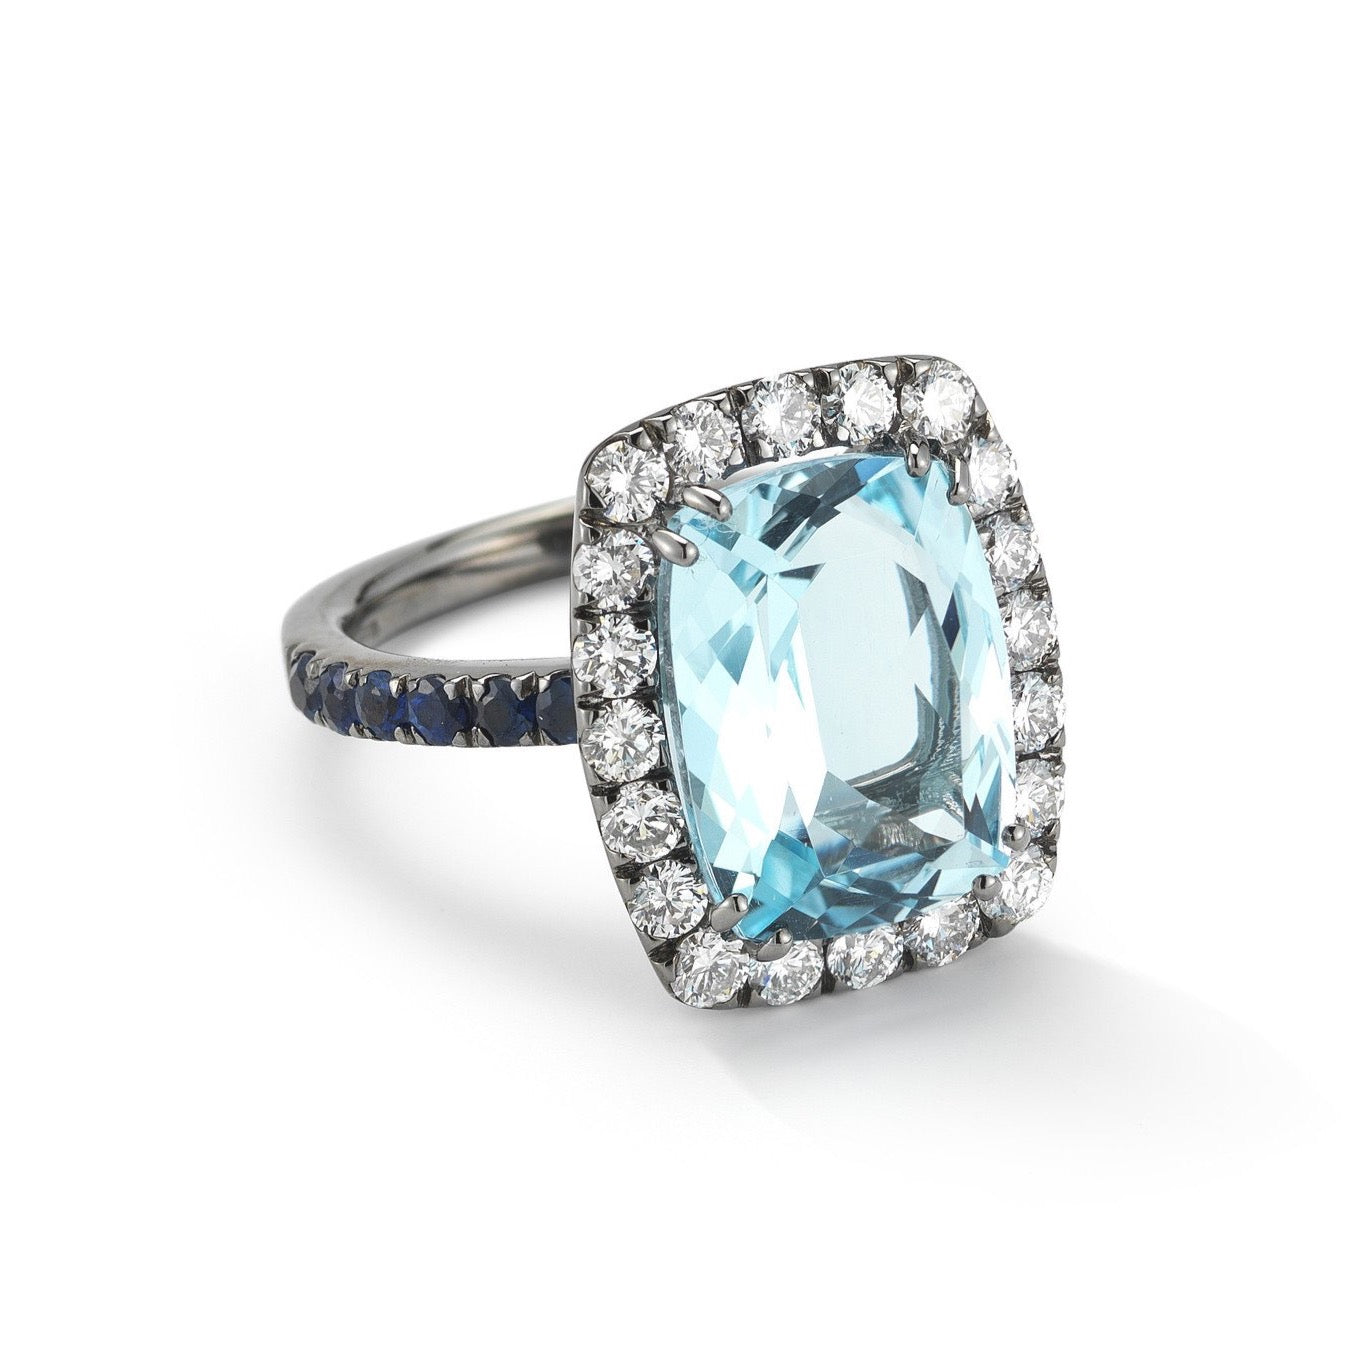 "A & Furst ""Dynamite"" Cocktail Ring with Blue Topaz, Diamonds and Blue Sapphires, 18k Blackened Gold."